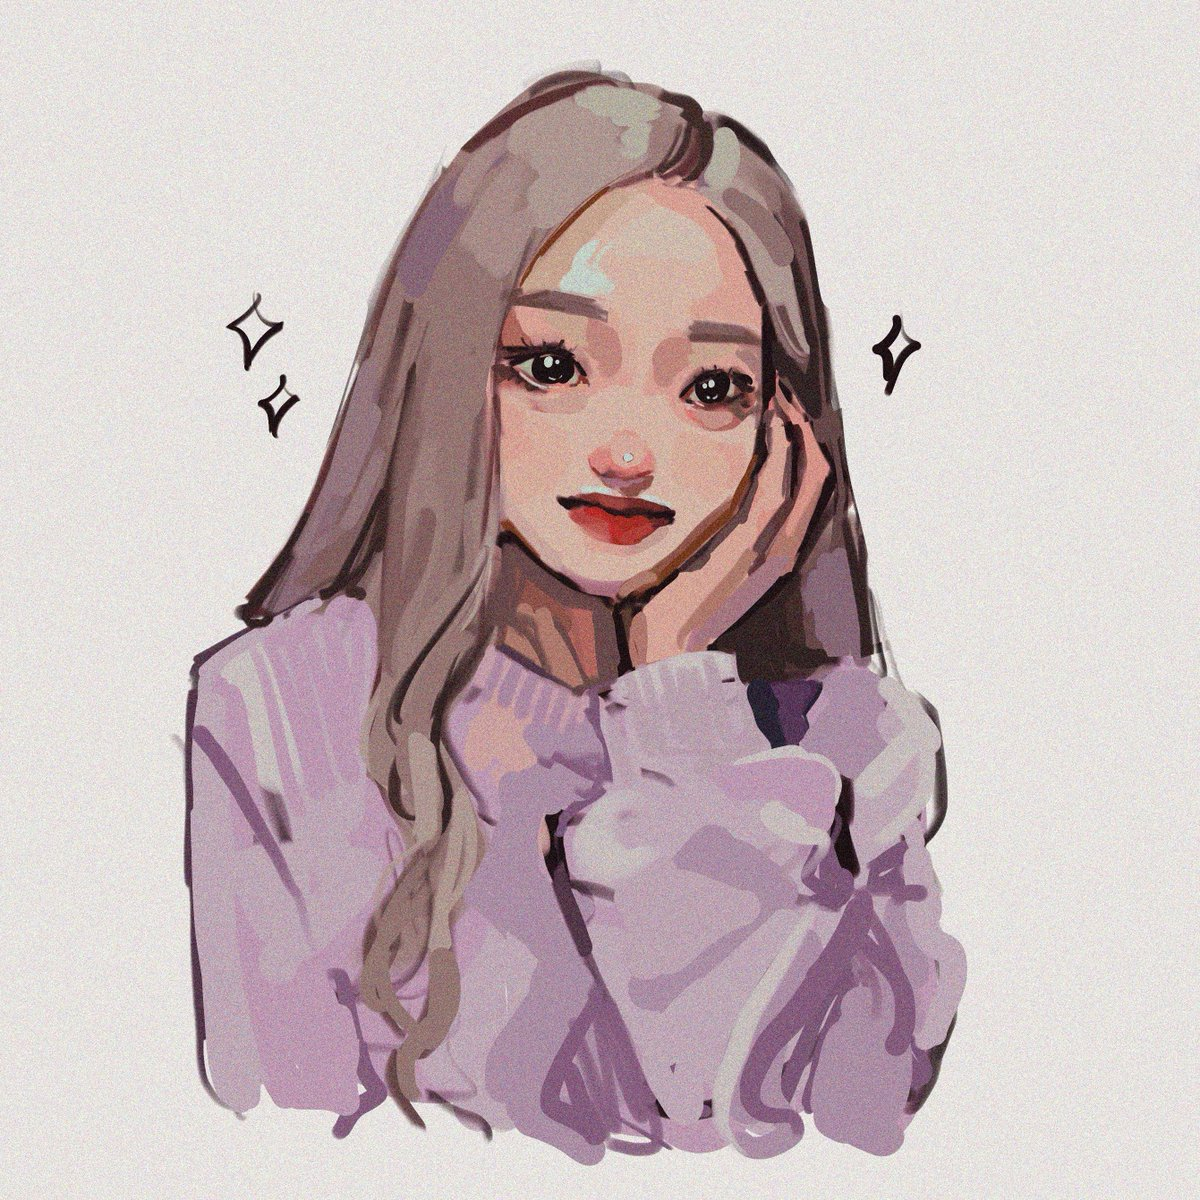 In the honour of X AE A-12's godmother, Gowon of loona  #loonafanart<br>http://pic.twitter.com/60oX1Xl94R